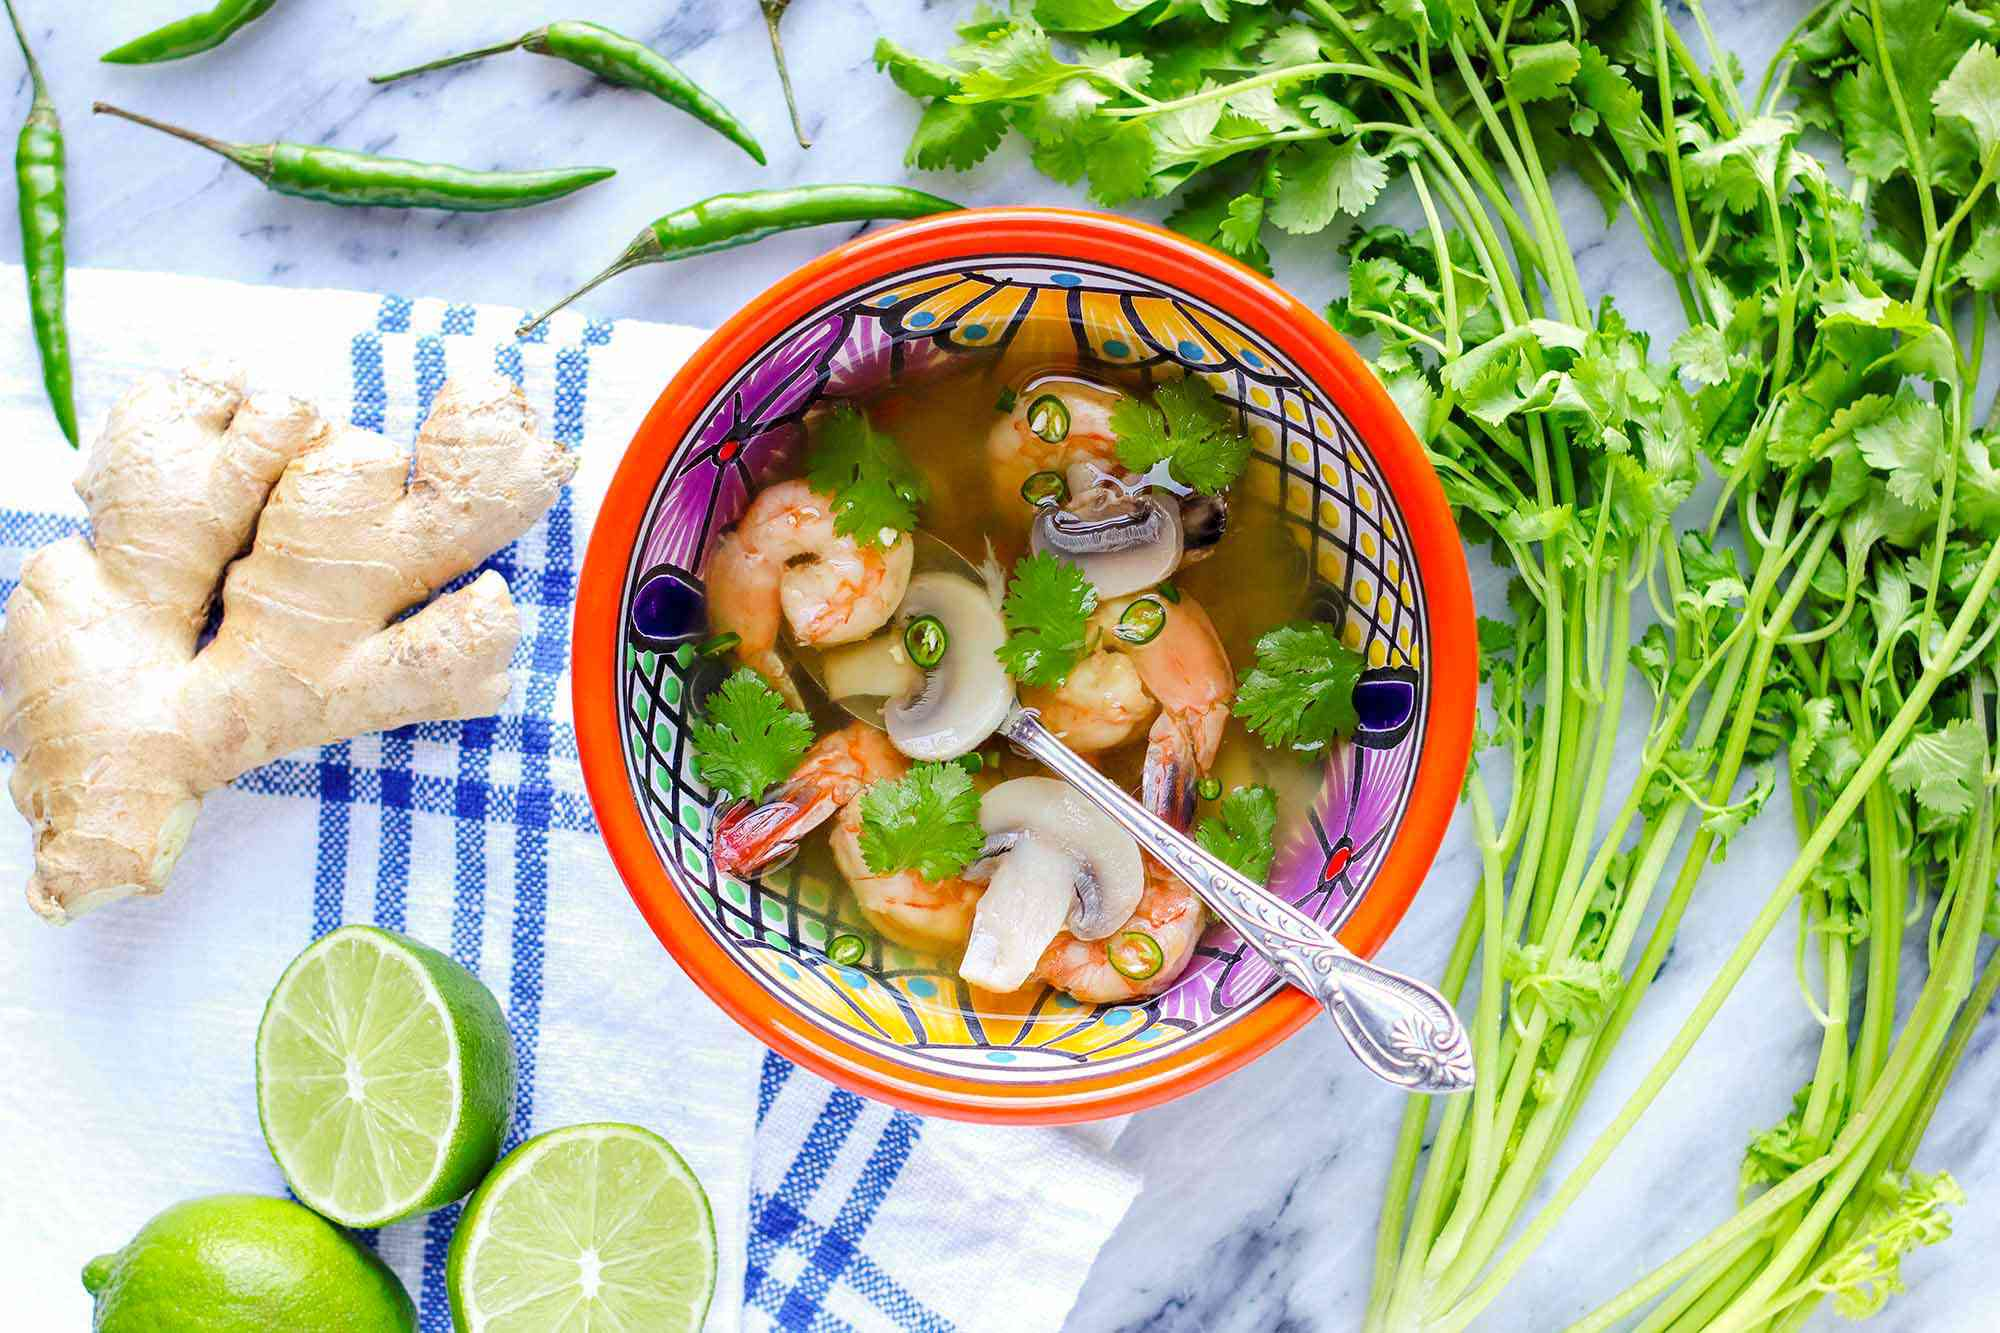 Thai soup with shrimp in a brightly patterned bowl with a silver spoon inside. Sliced limes, ginger, peppers and cilantro stems suround the bowl of light broth, shrimp, mushrooms and cilantro. The bowl is on a marble counter with a blue striped linen to the left of the bowl.